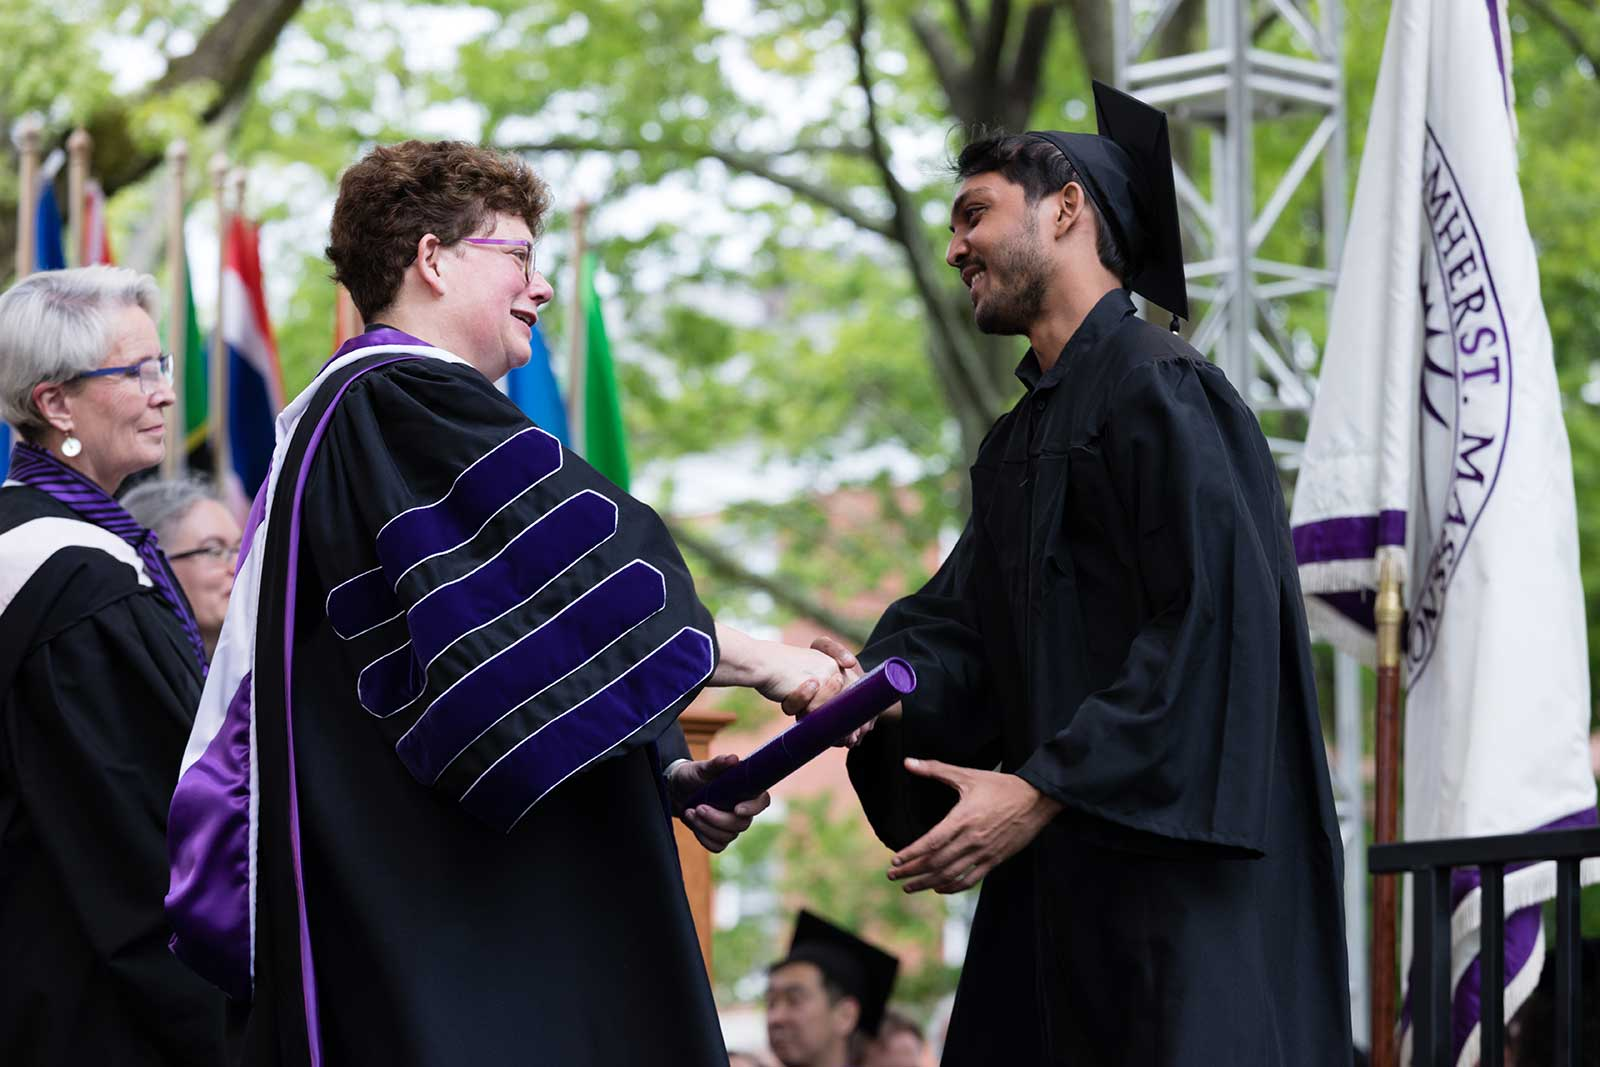 President Martin shaking hands with a graduate